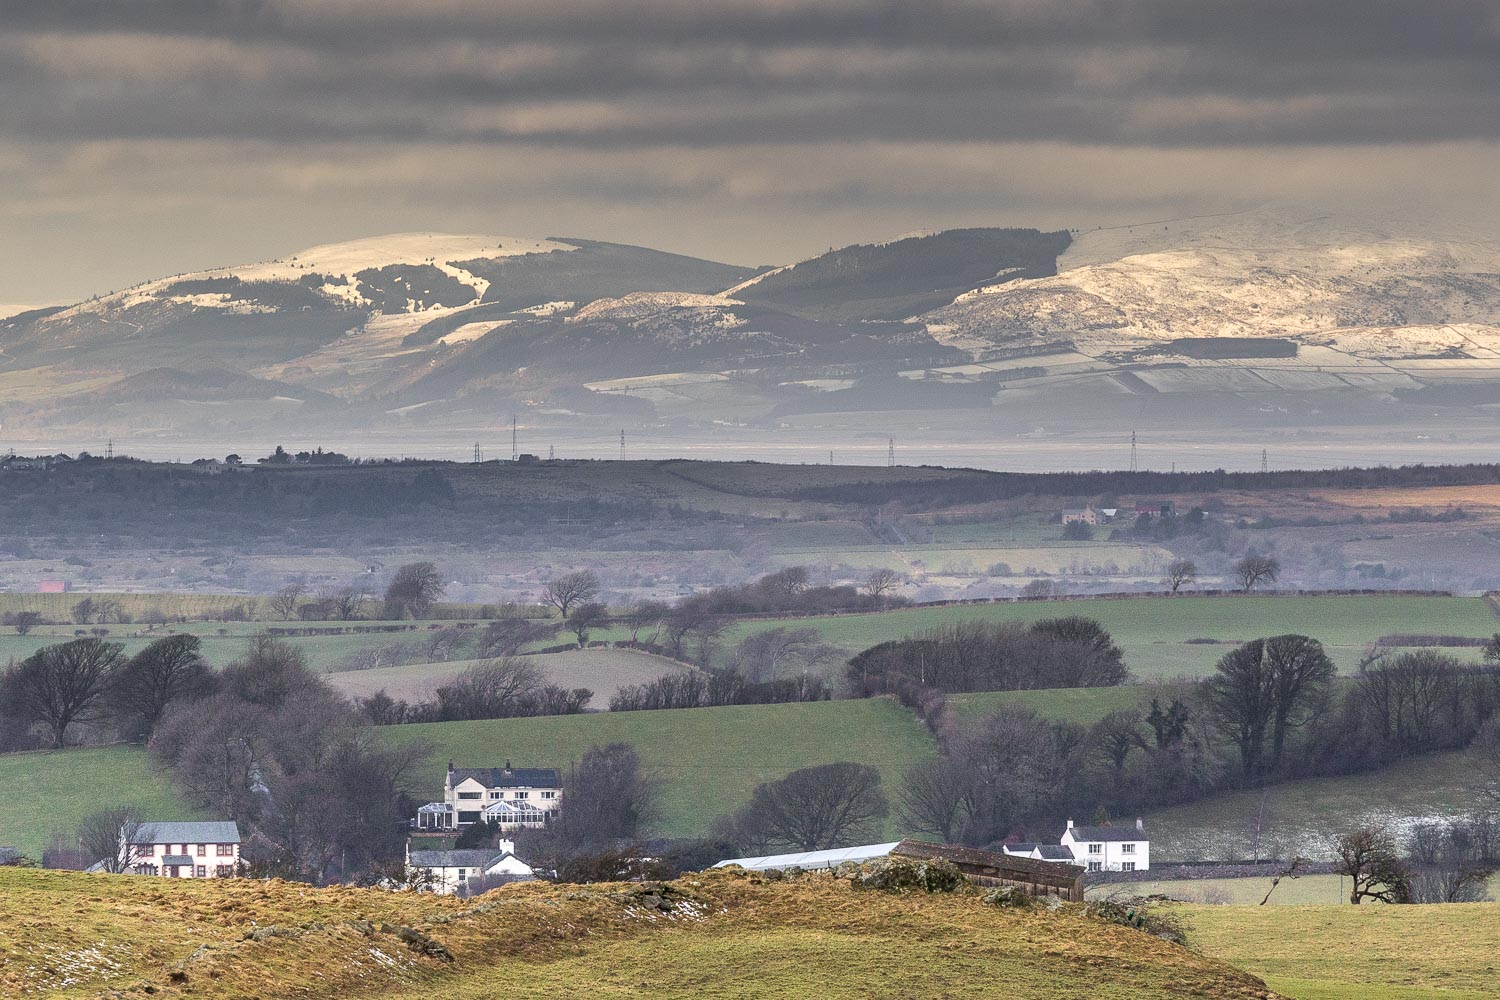 Solway Firth and the hills of Scotland